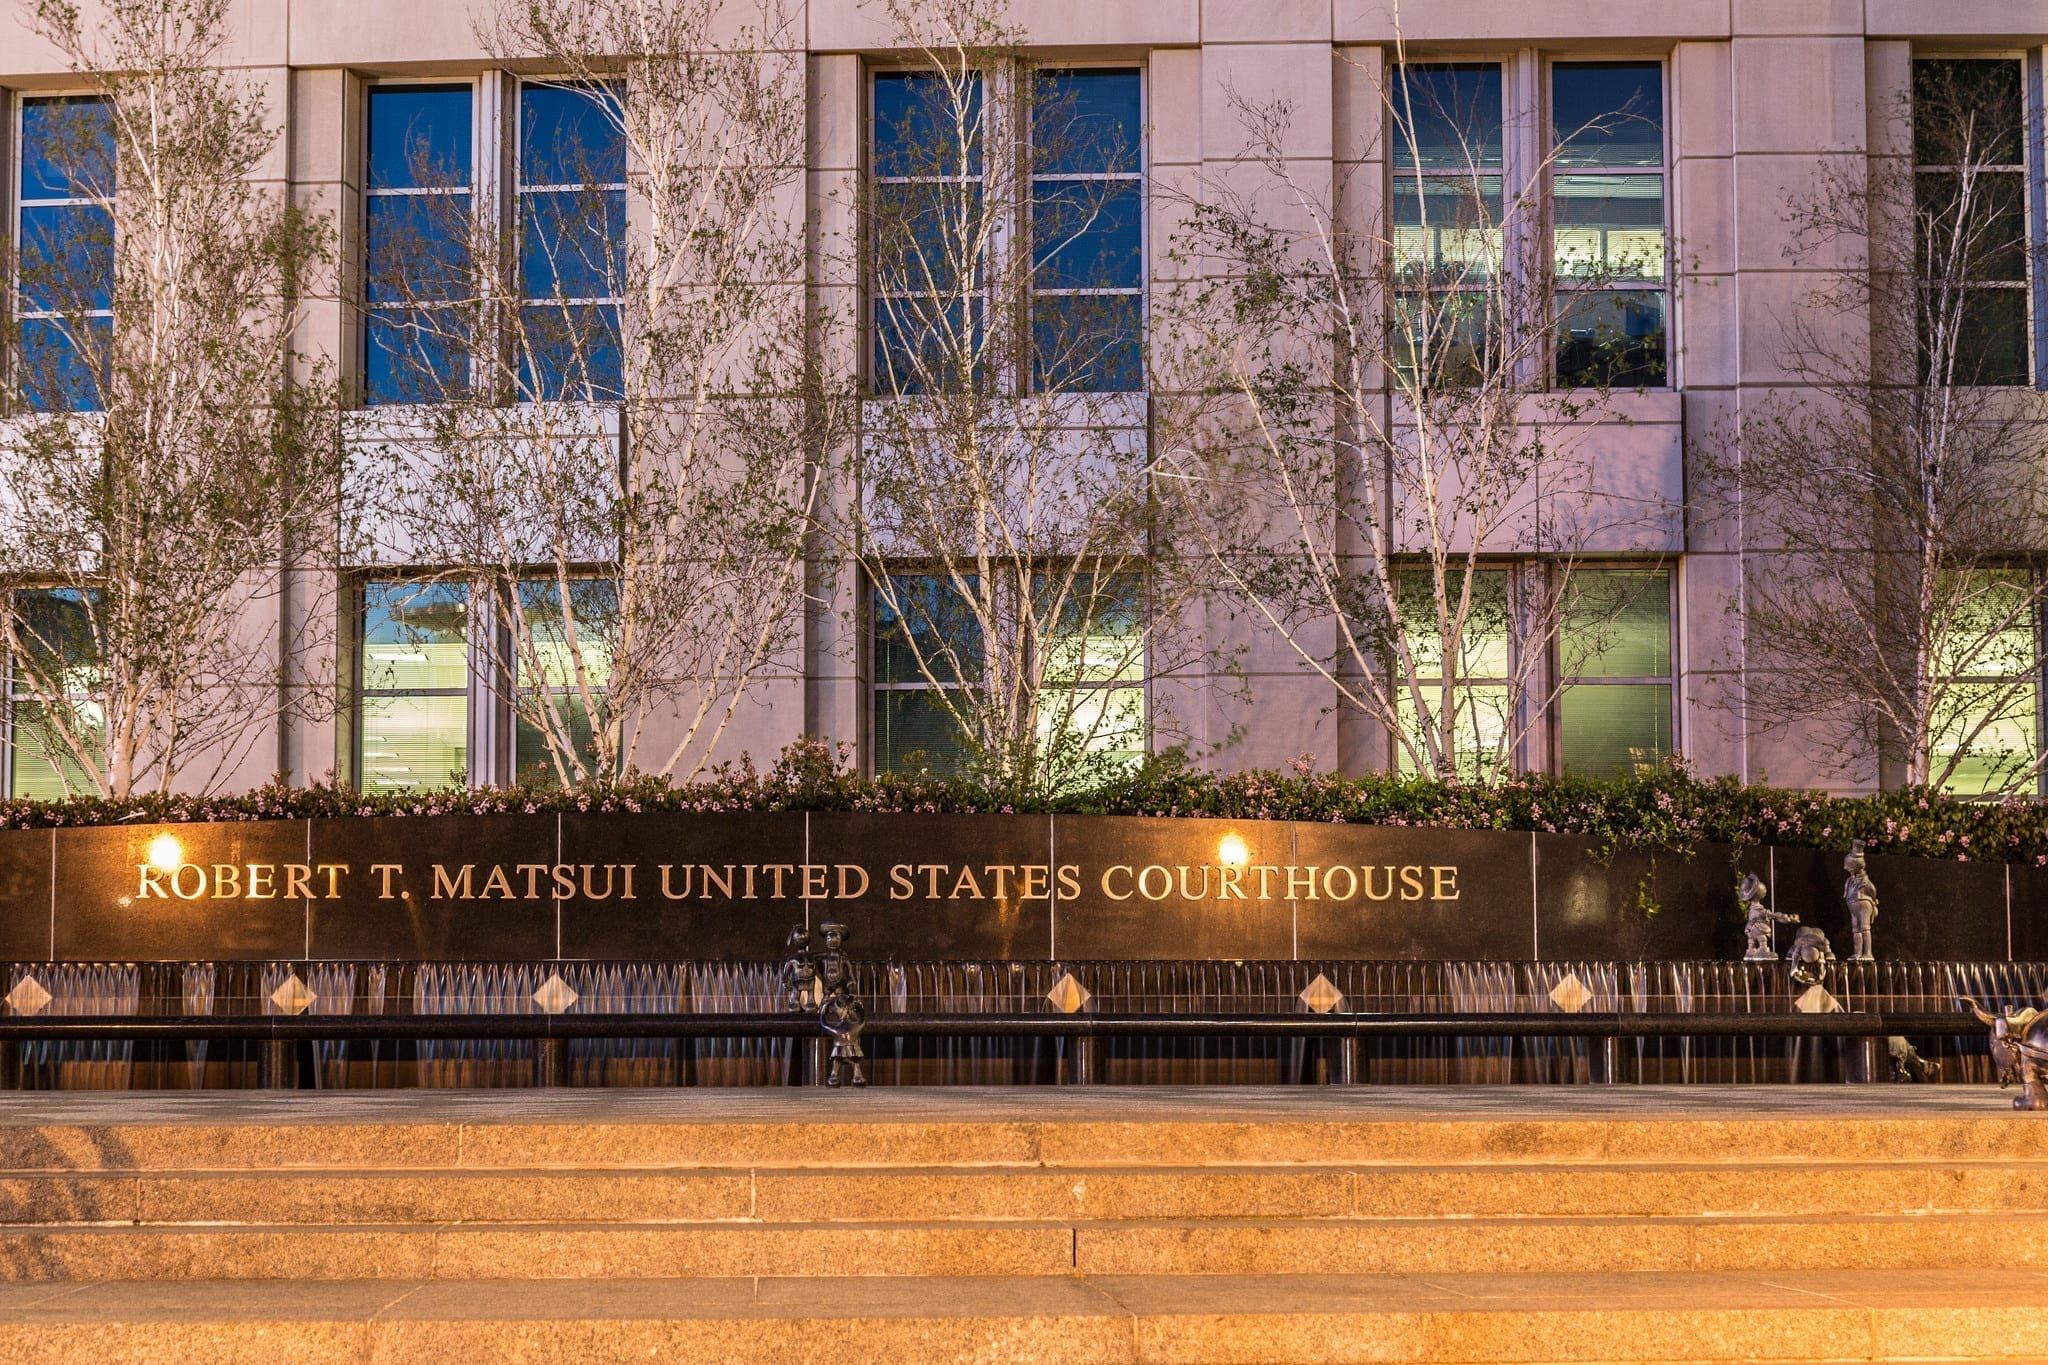 Robert T. Matsui United States Courthouse - U.S. District Court, Sacramento; photo by Tony Webster, via Flickr, CC BY-SA-2.0, no changes.